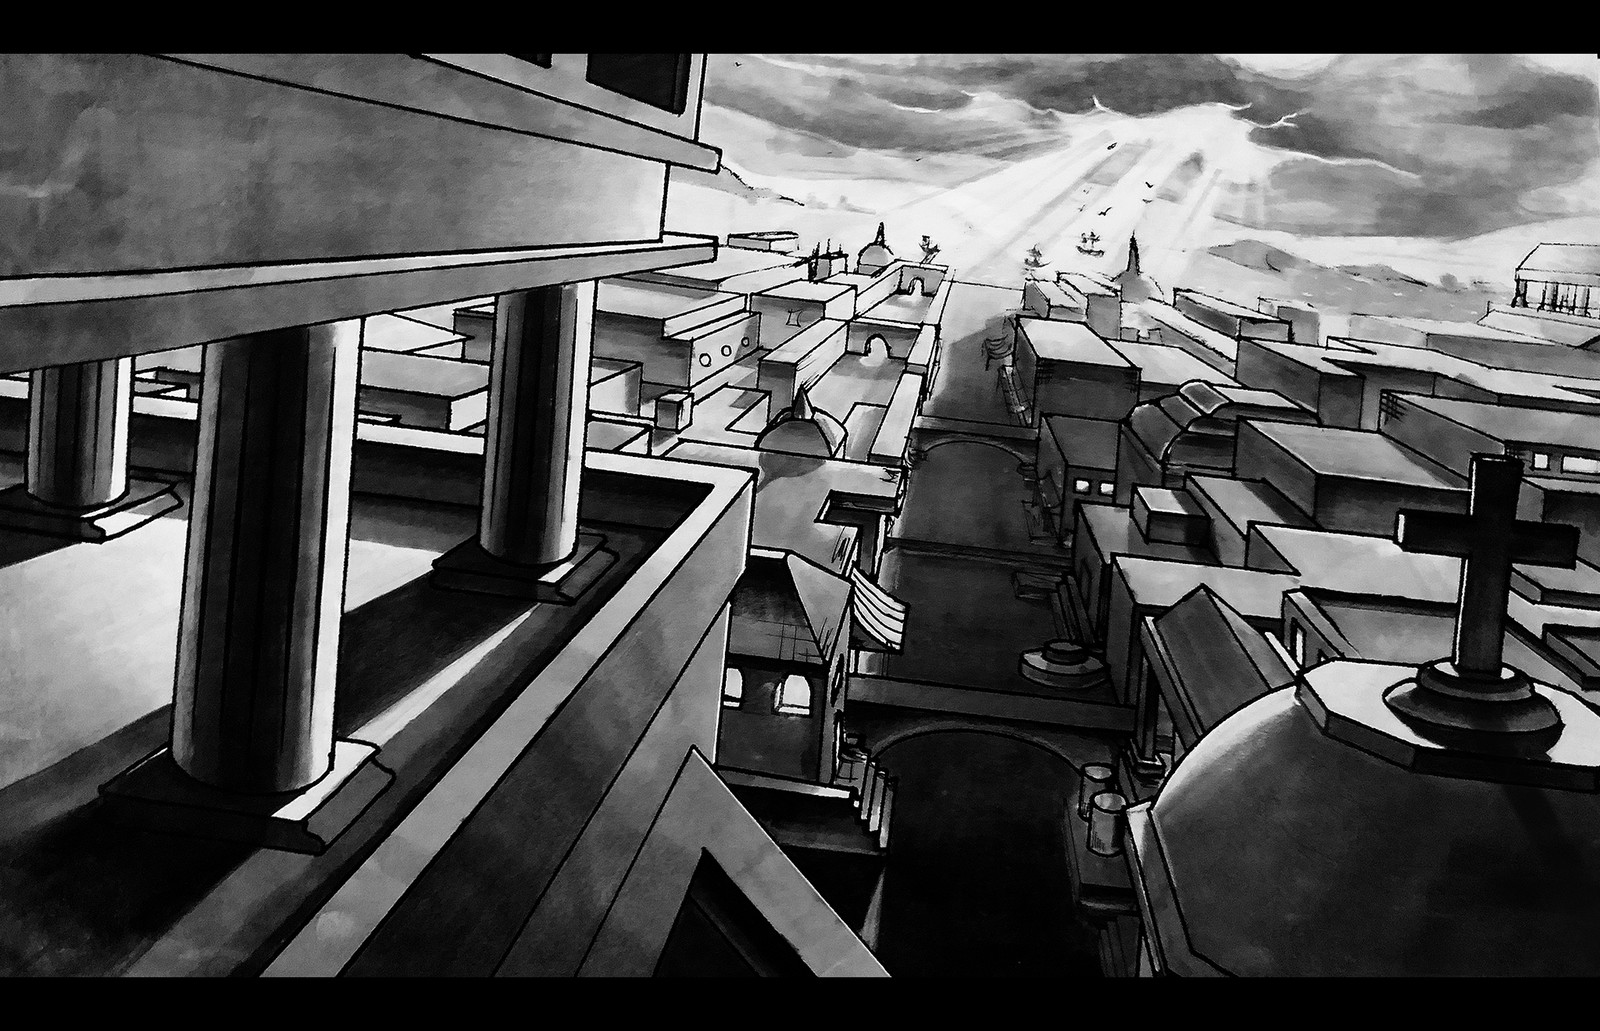 Perspective Environment 01